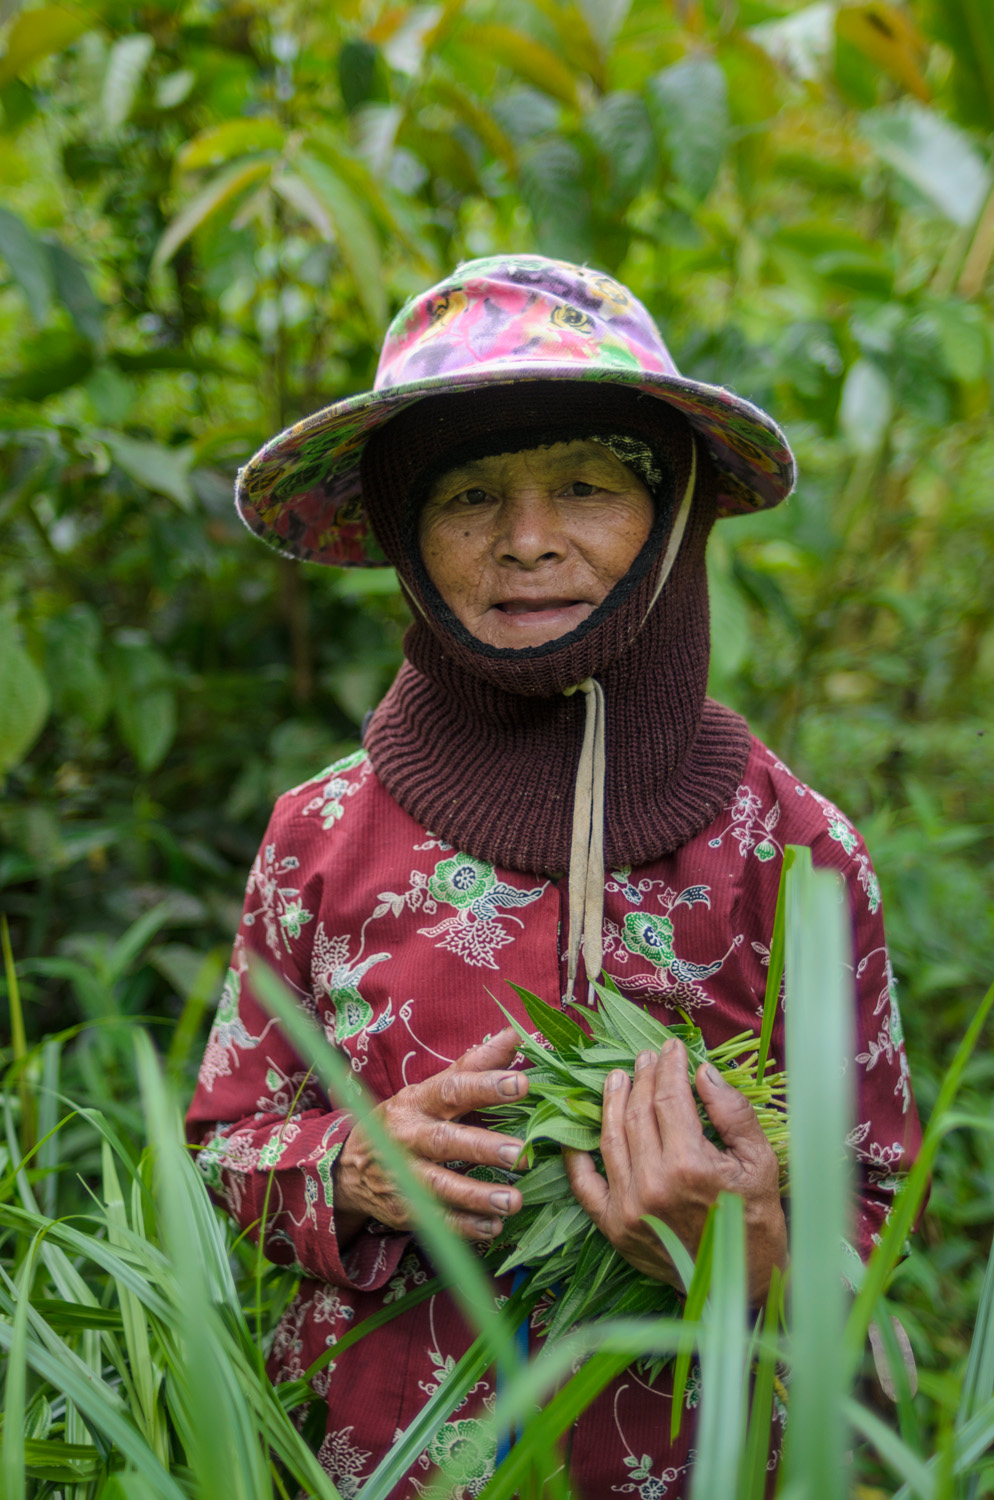 Sina Anid Bala collects wild ferns and herbs in the jungles near Bario. Wild foods gathered from the surrounding jungles make up a large portion of food eaten by people in the Kelabit Highlands.